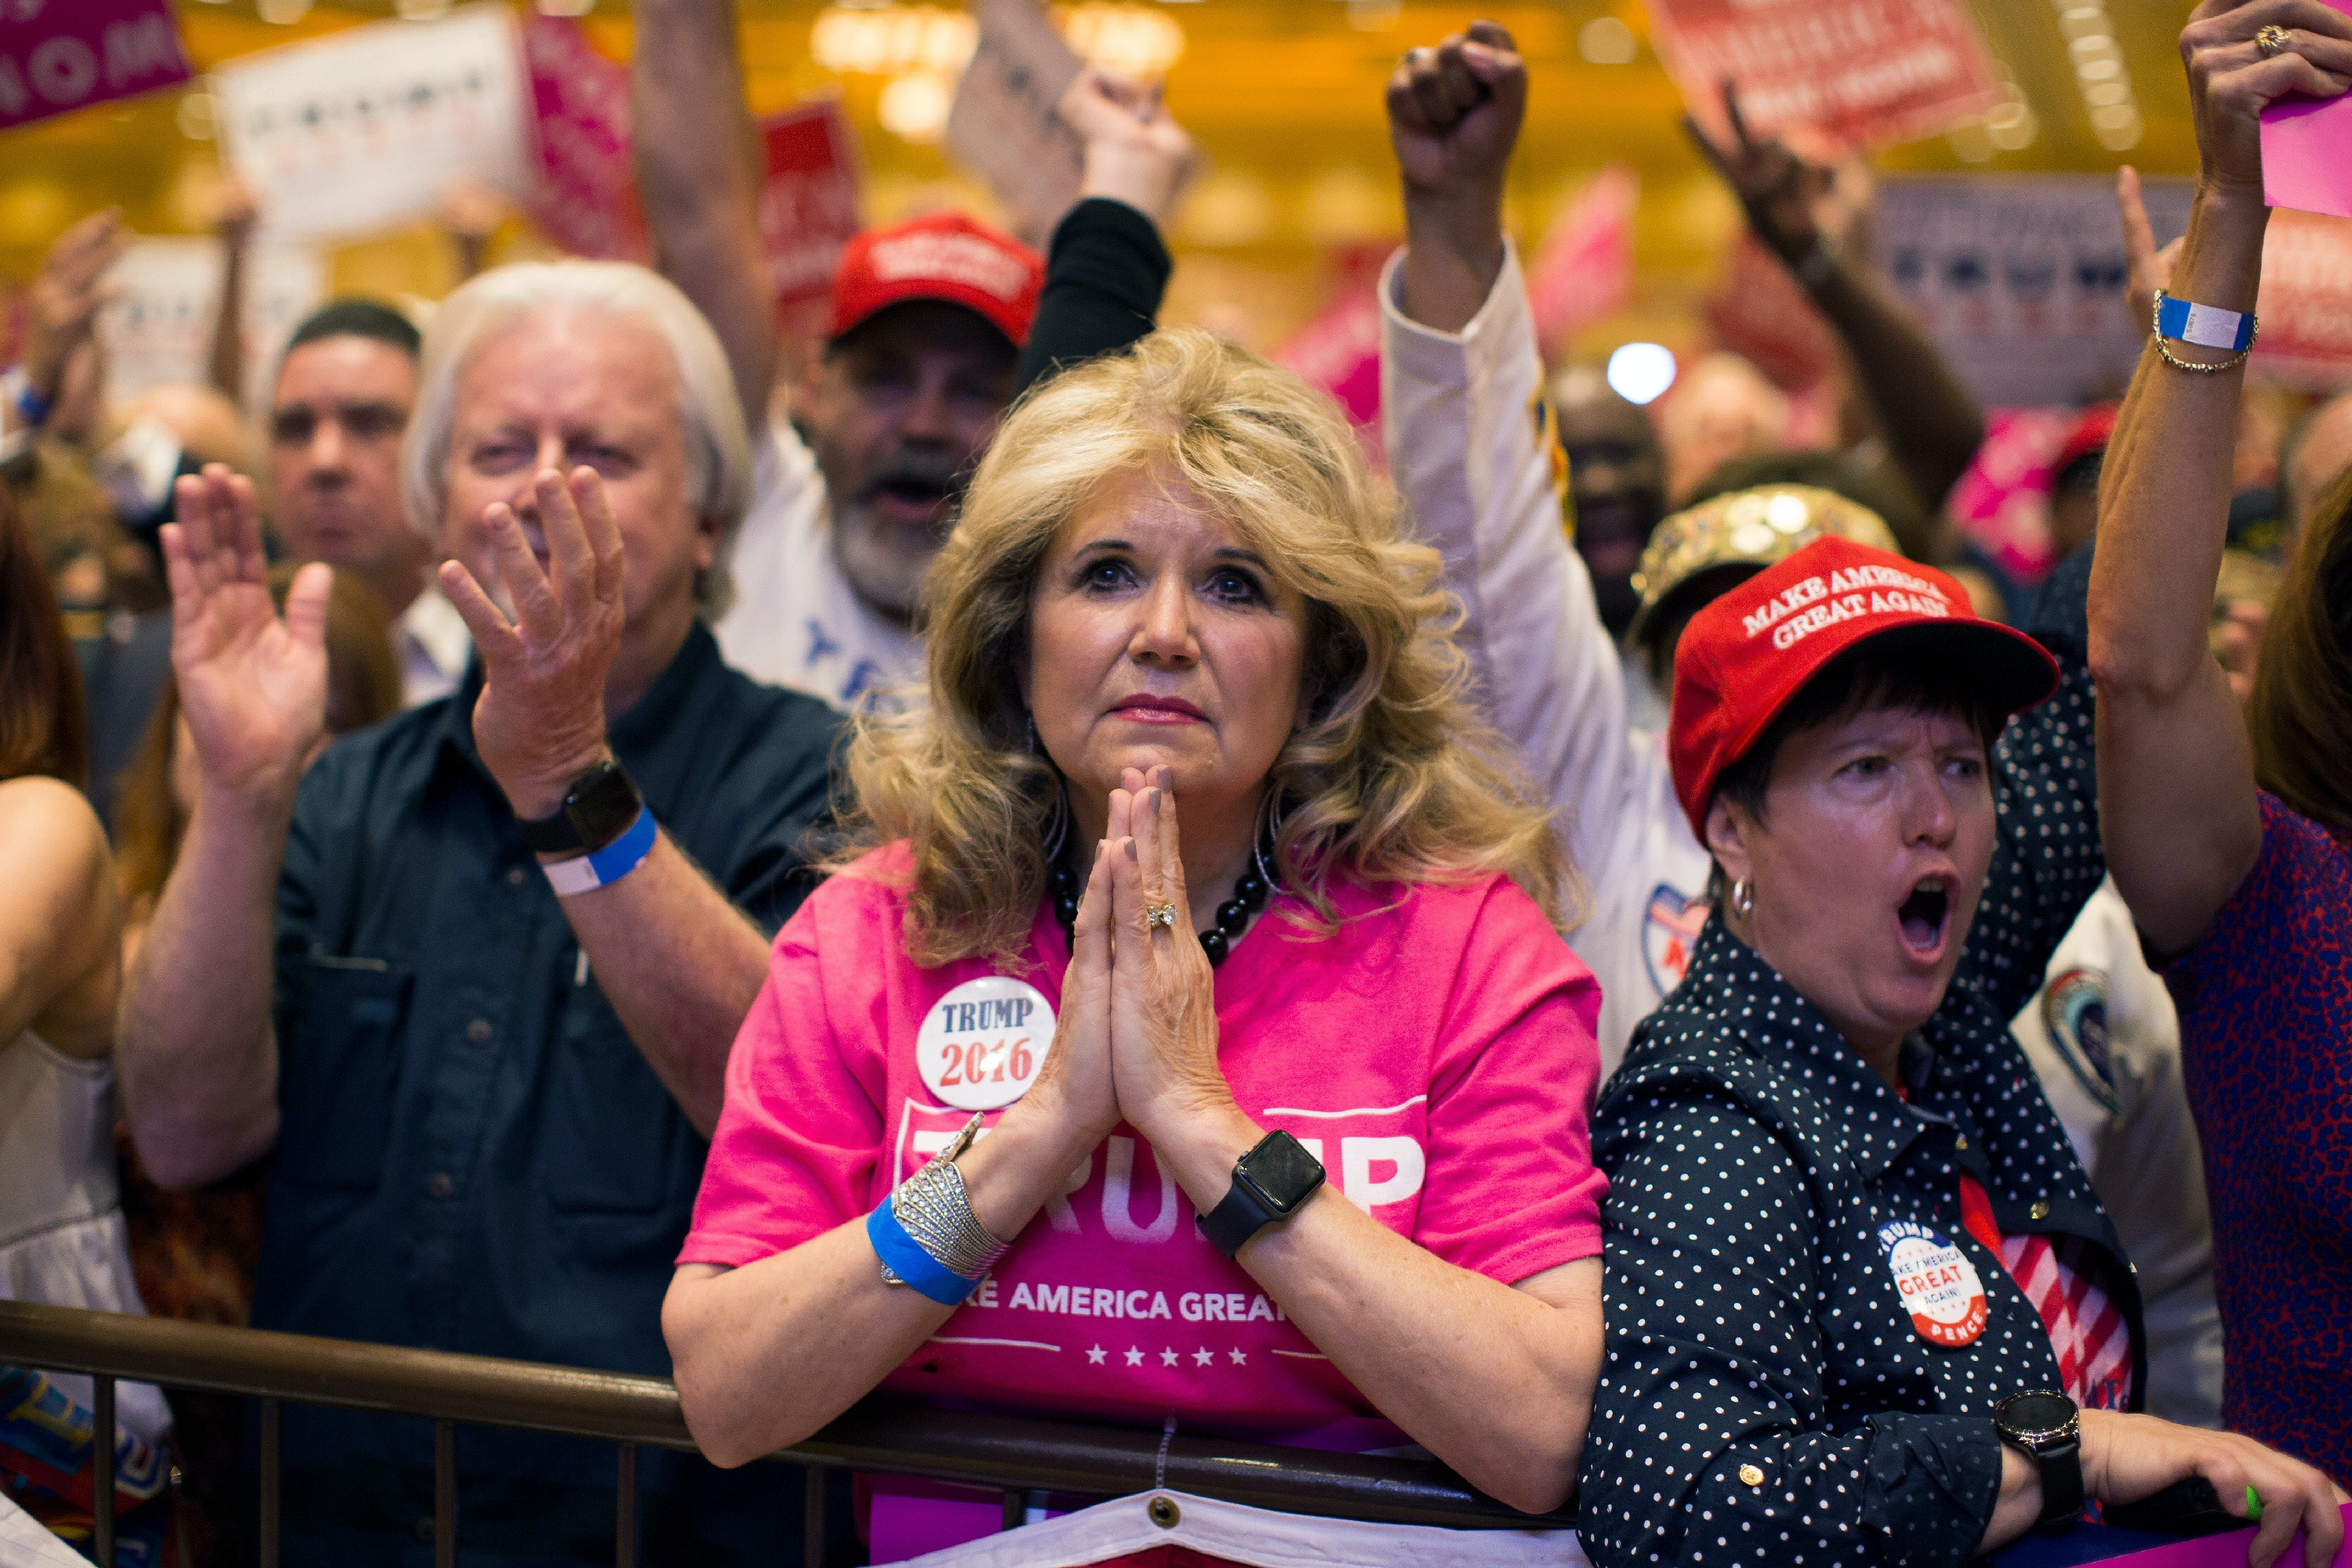 Supporters of Republican presidential candidate Donald Trump watch him speak during a campaign rally, Sunday, Oct. 30, 2016, in Las Vegas. (AP Photo/Evan Vucci)